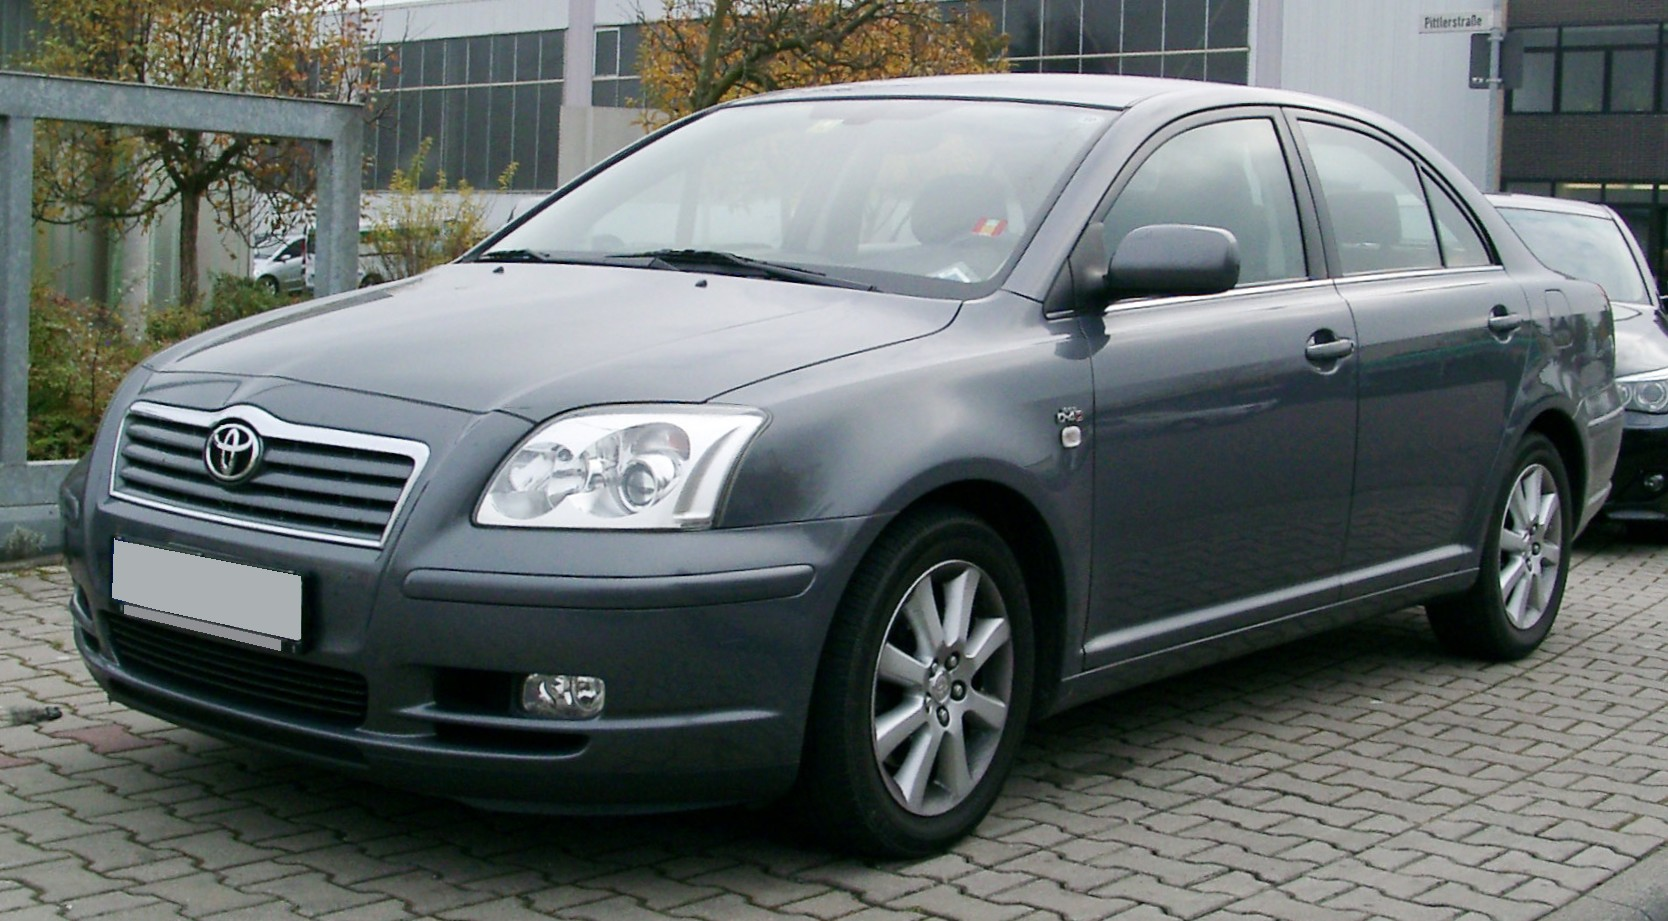 Toyota_Avensis_front_20071029